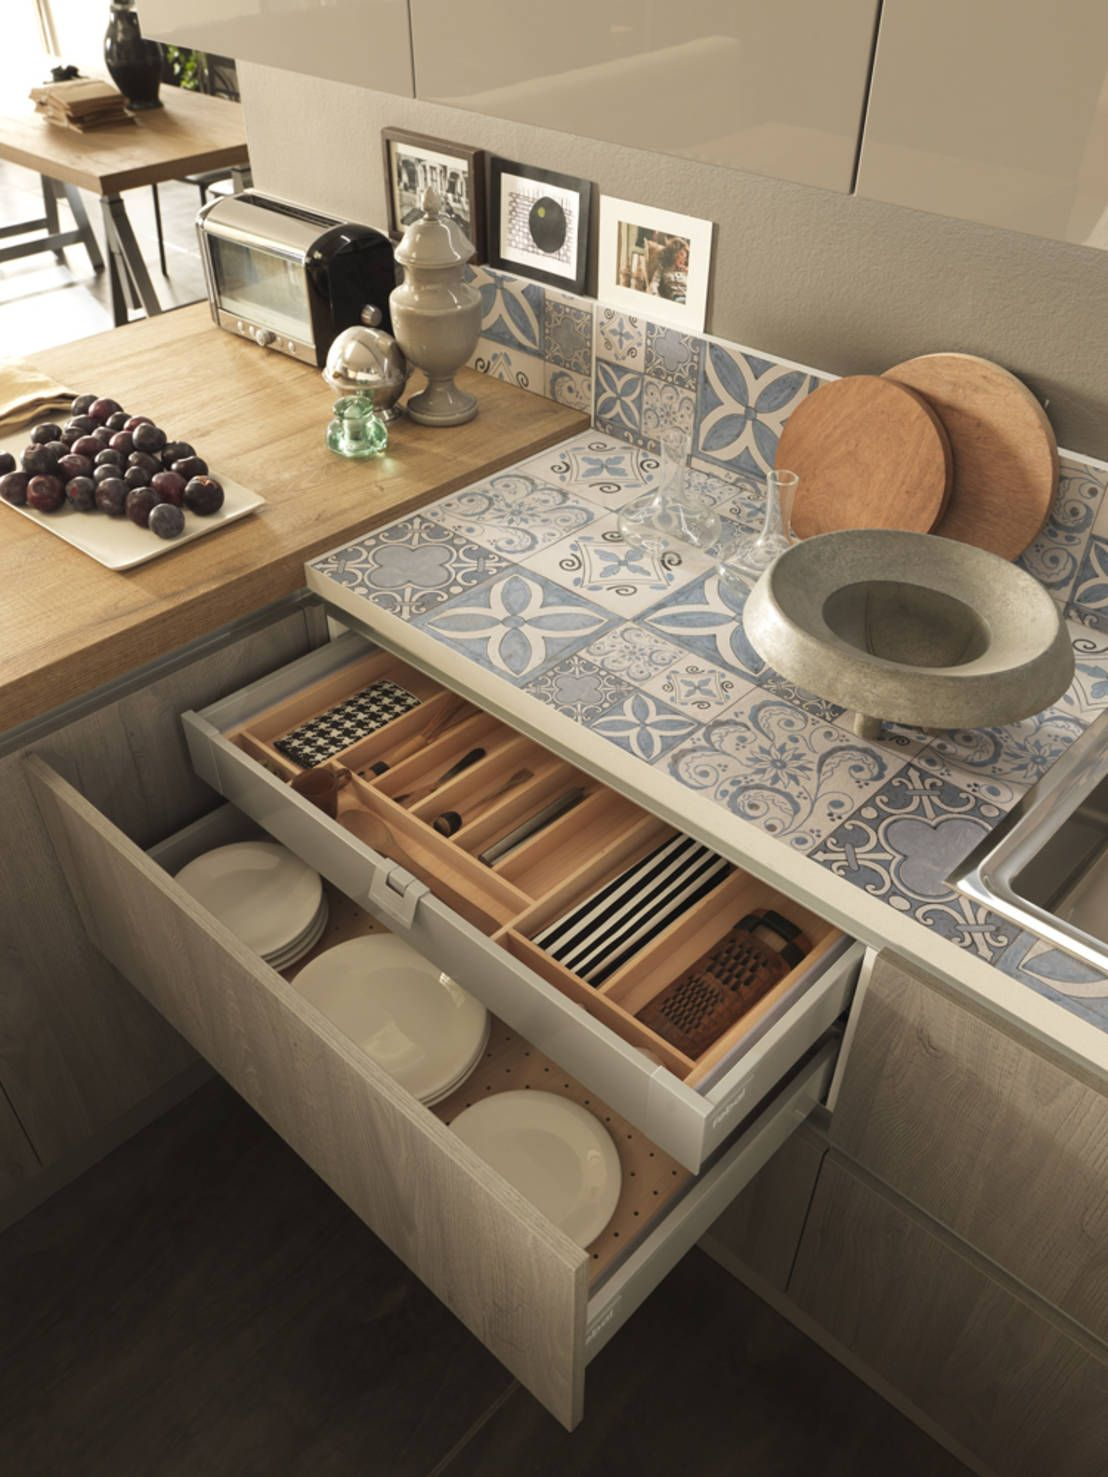 6 pasos para planificar una cocina r stica kitchens ideas para and house - Planificar una cocina ...